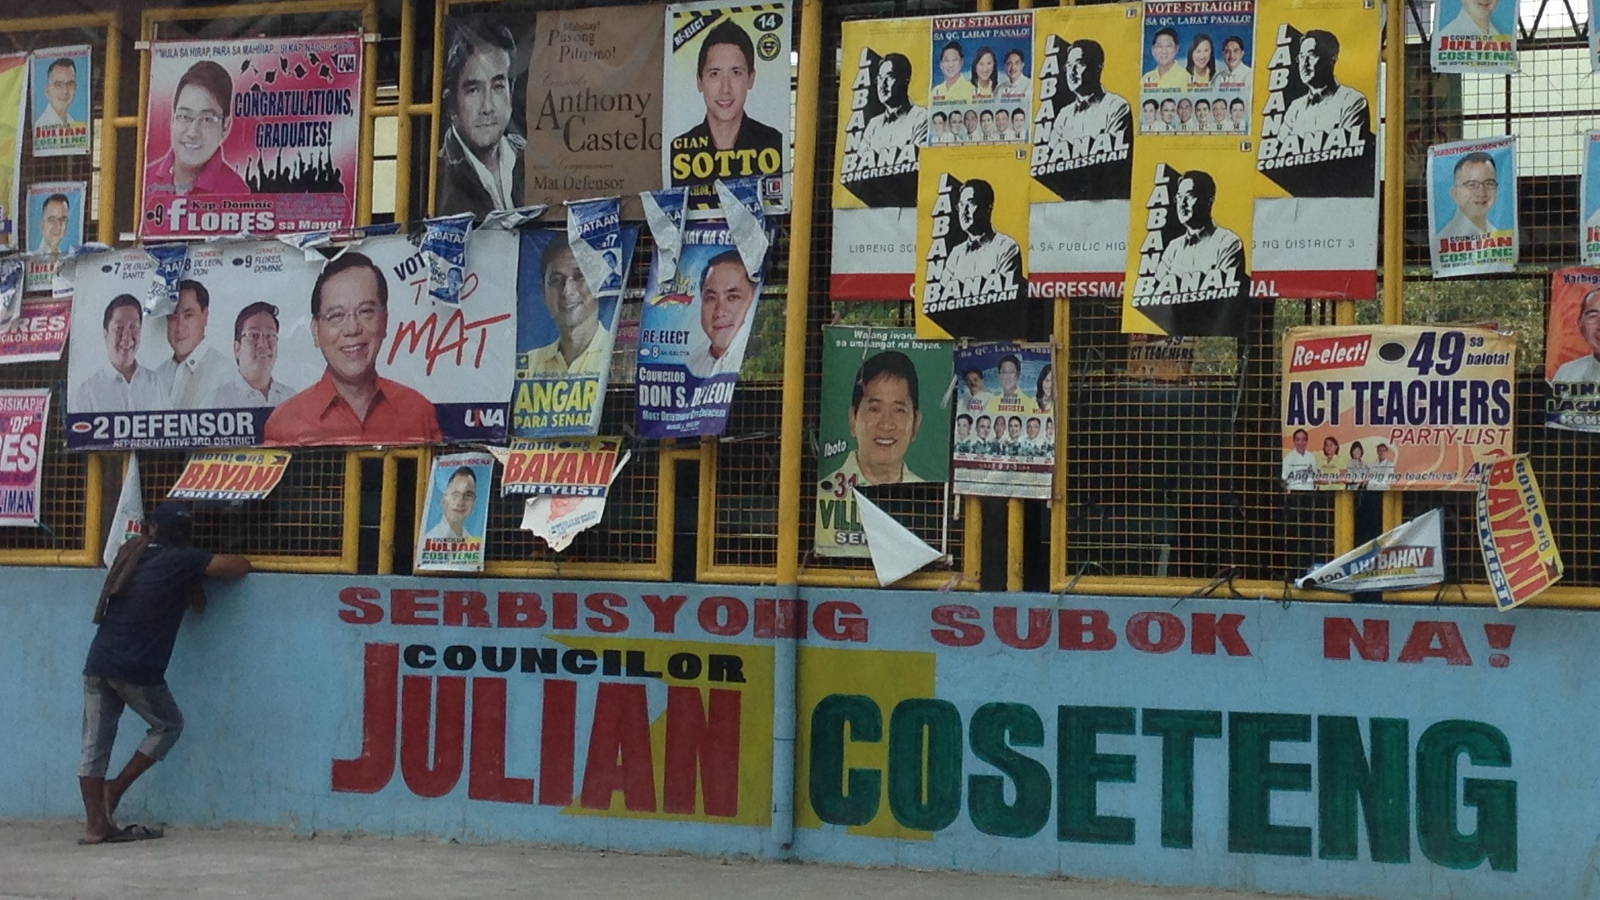 For some reason I took many photos of campaign posters during my trip to Baguio last week. For this blog entry I ended up using this one... from Quezon City.